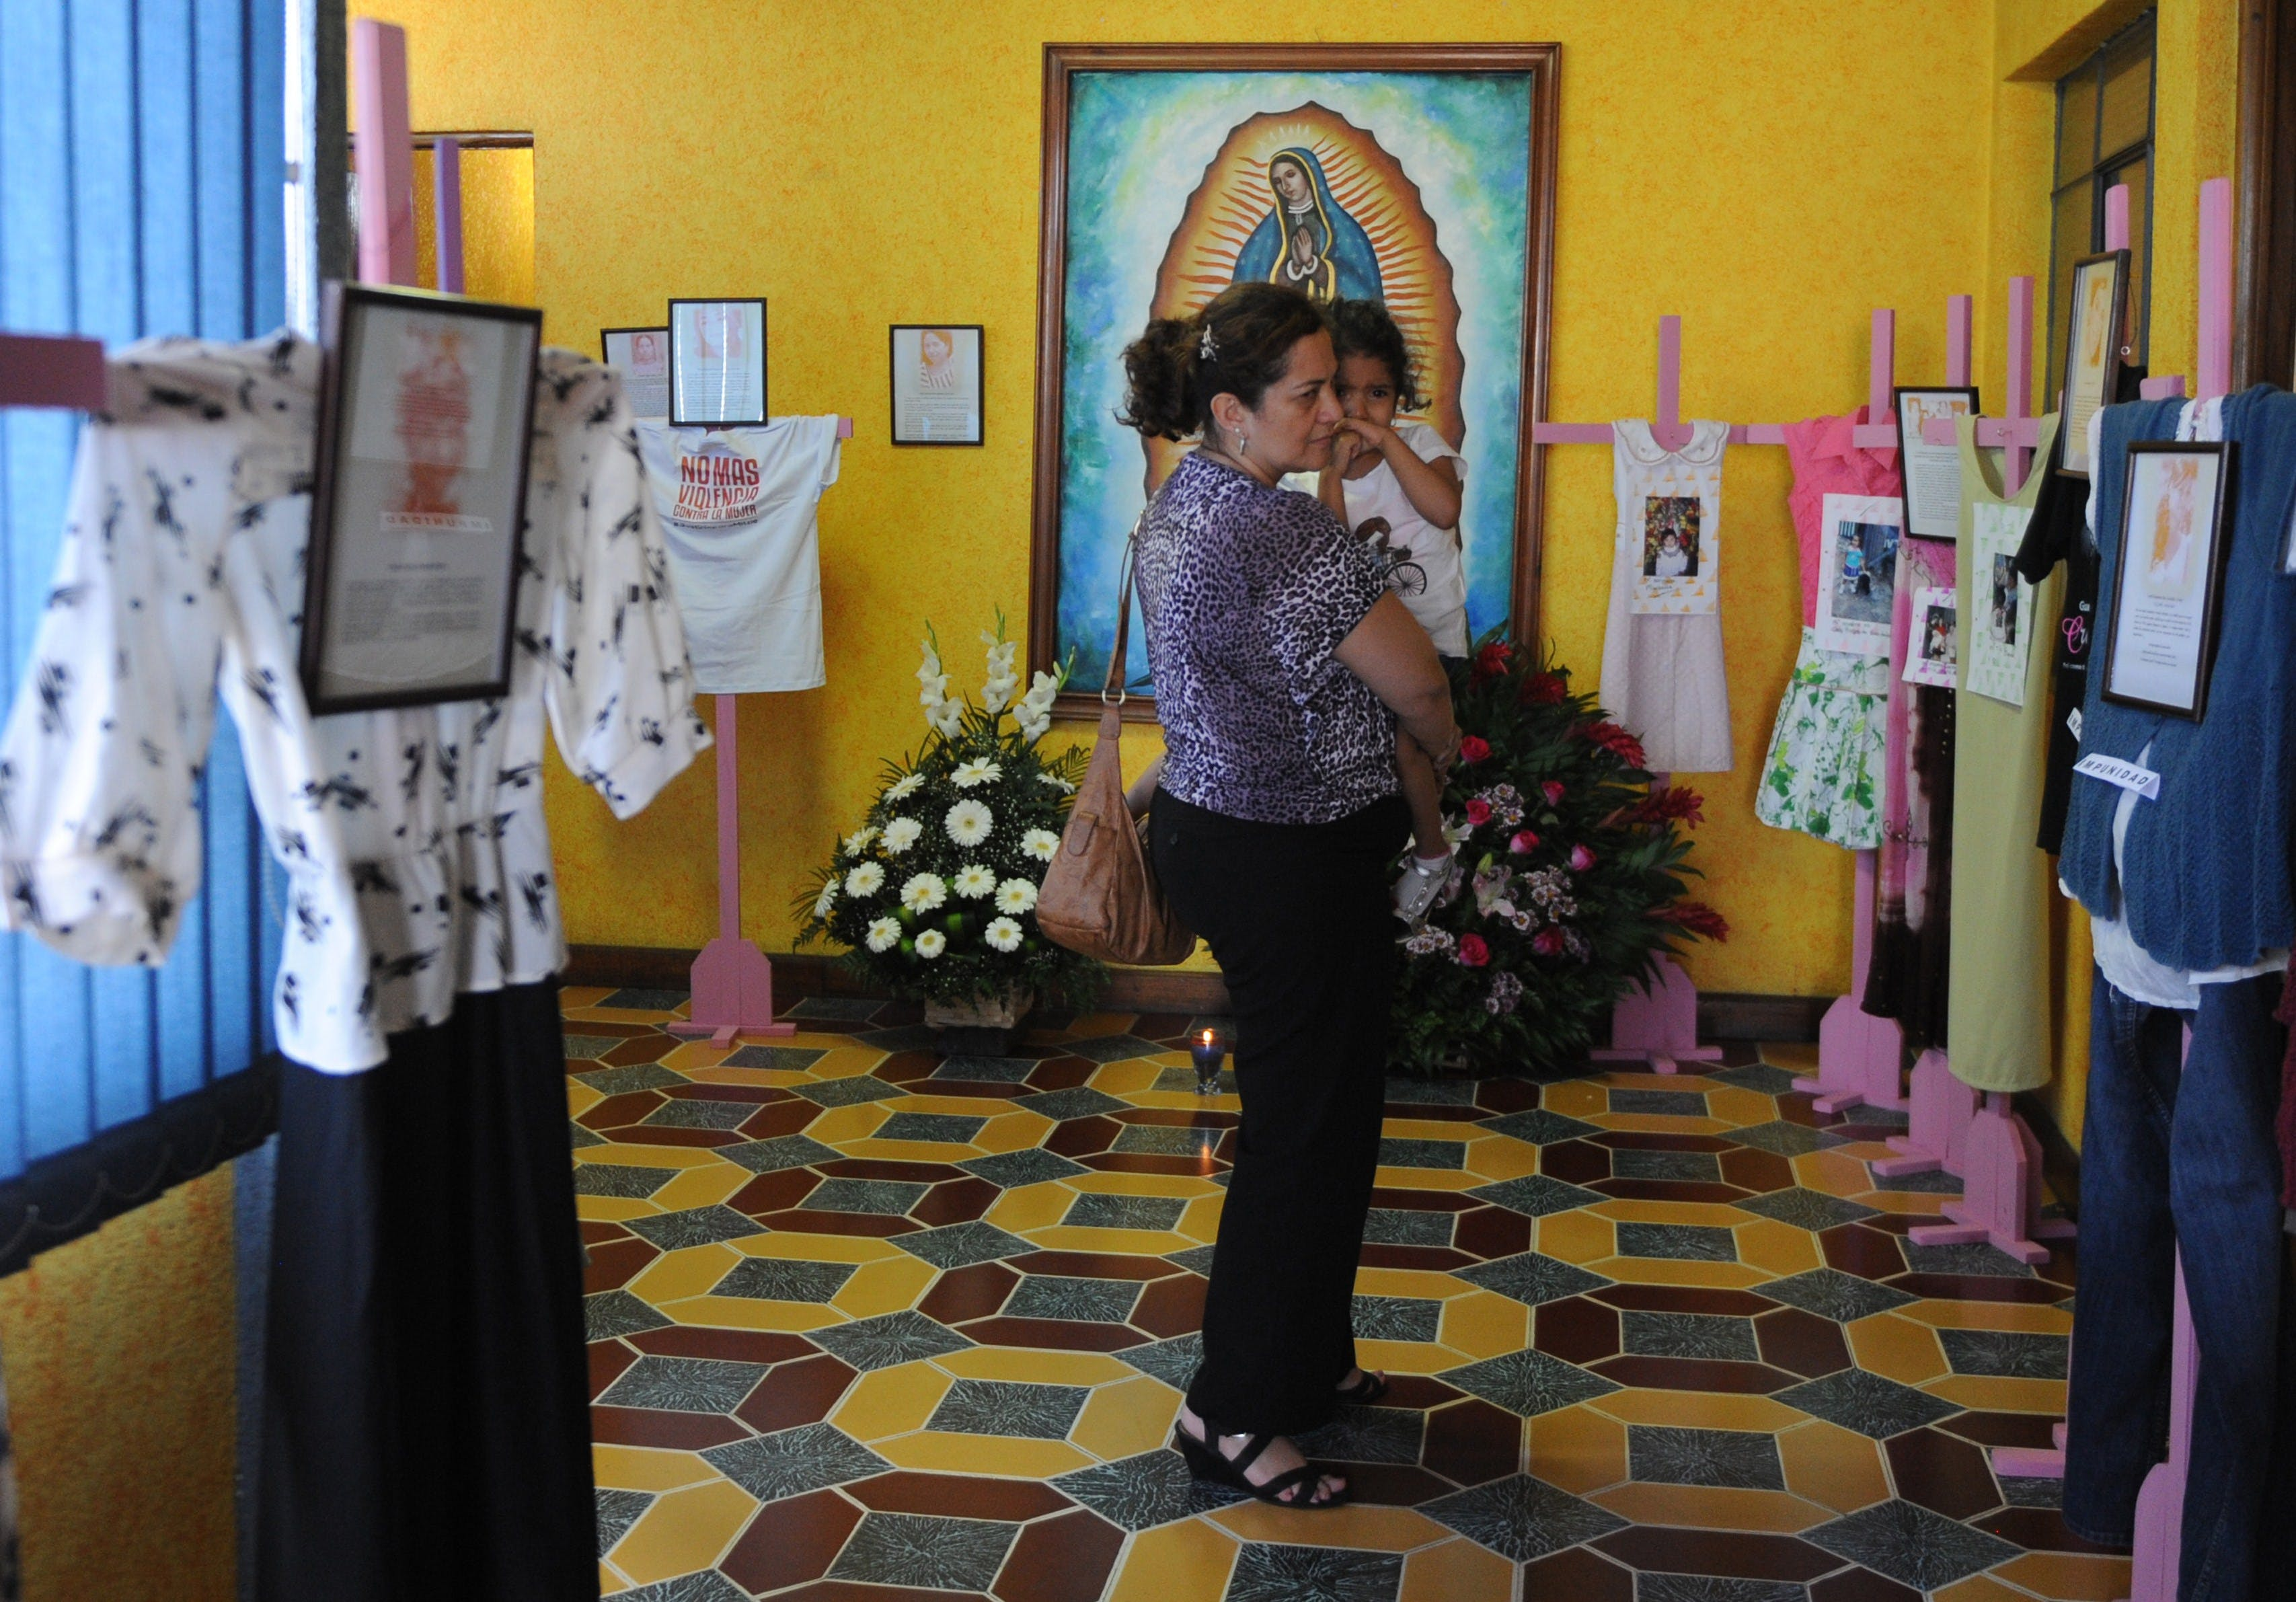 A woman and her daughter look at crosses displaying clothes of women victims of violence during a tribute at the headquarters of the Survivors Foundation in Guatemala City on November 23, 2014, in the framework of the Day for the Elimination of Violence against Women.  AFP PHOTO/Johan ORDONEZ        (Photo credit should read JOHAN ORDONEZ/AFP/Getty Images)